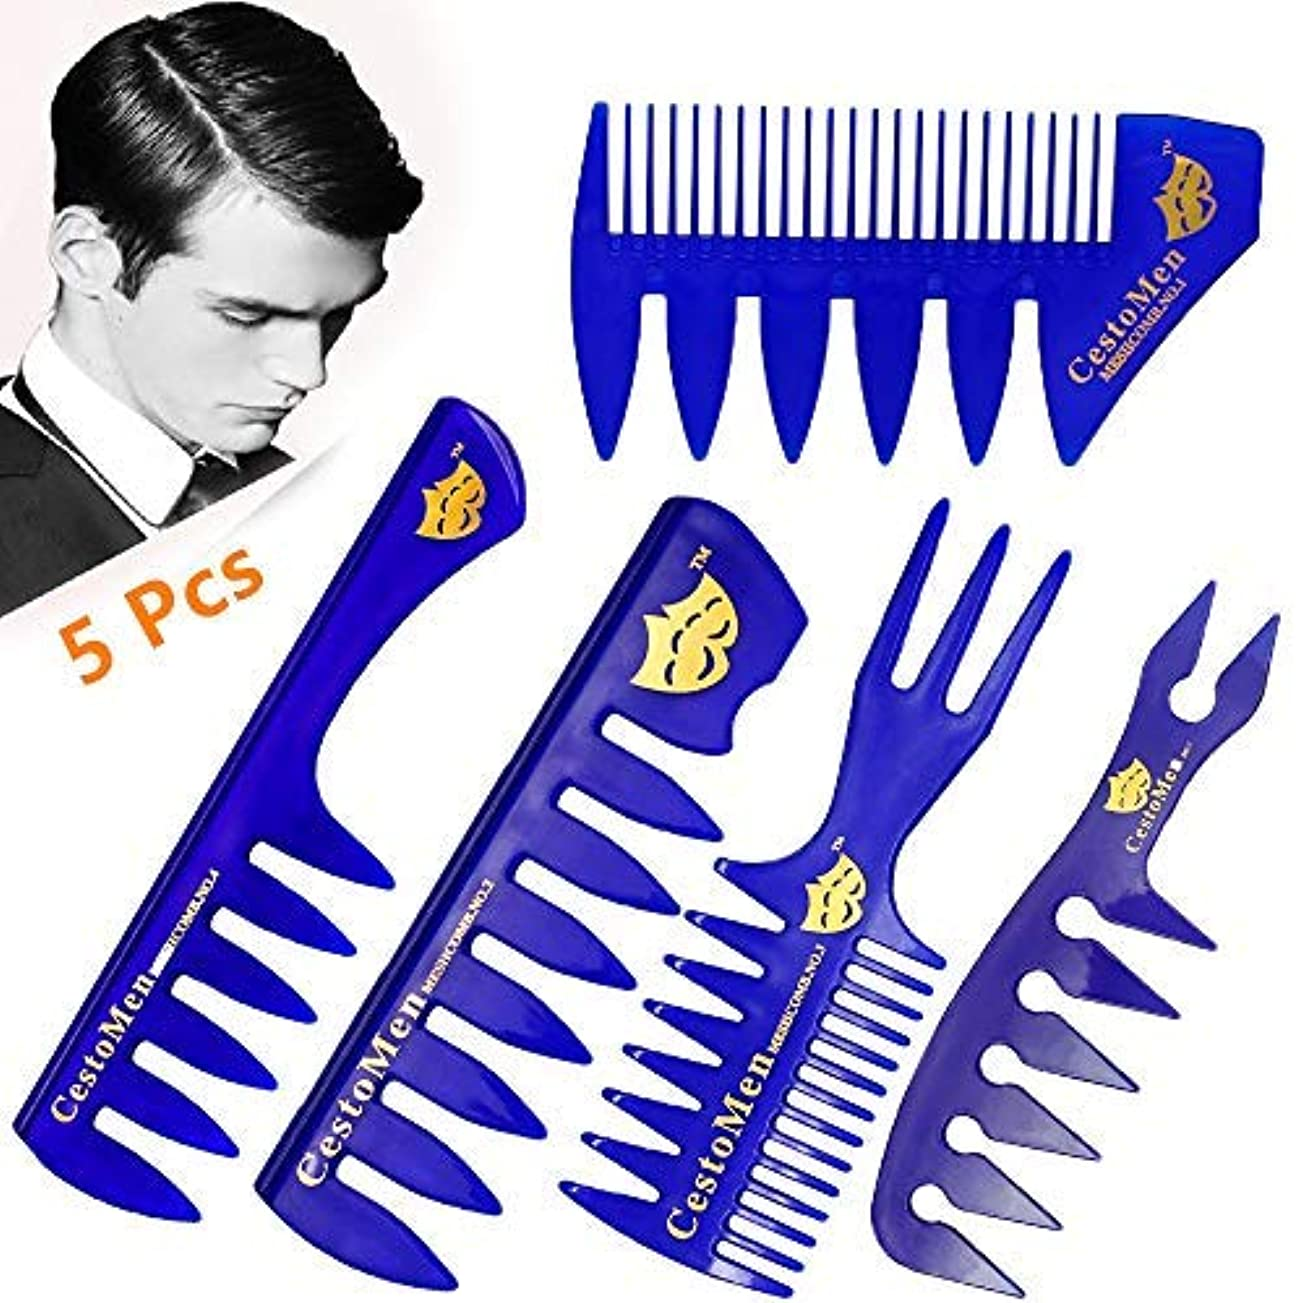 5 Pack Hair Professional Teasing Combs - for Hairdressing, Barber, Hairstylist, Premium Quality Anti Static Hair...